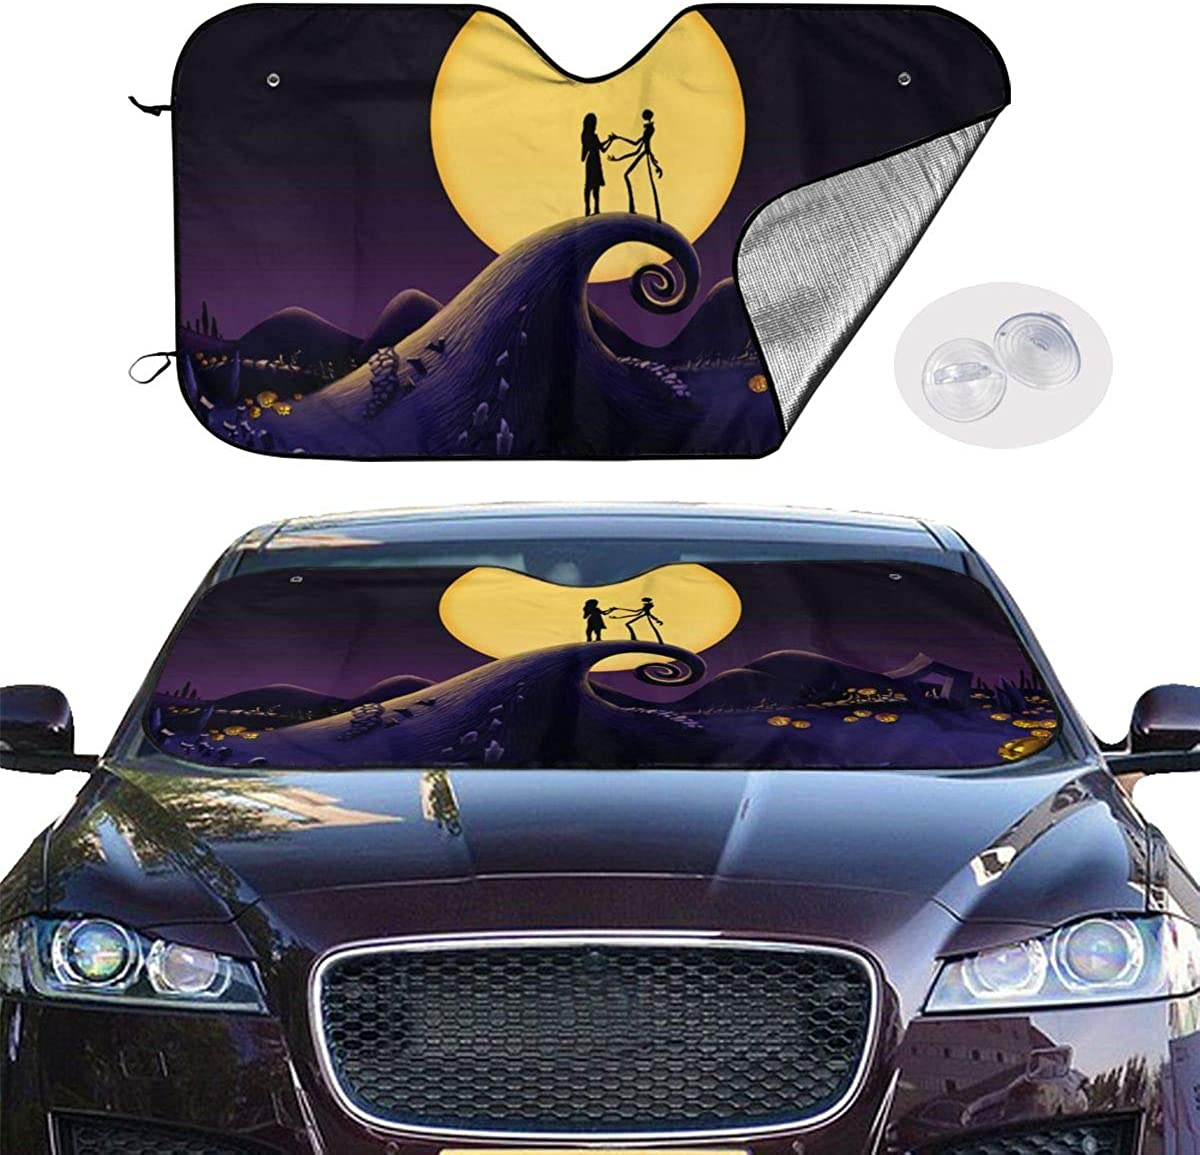 Foldable Universal for Car Truck SUV Blocks Uv Rays Sun Visor Protector-Keep Your Vehicle Cool 51 X 27 Inch ULQUIEOR Front Windshield Sun Shade Dead The Nightmare Before Christmas The Starry Night